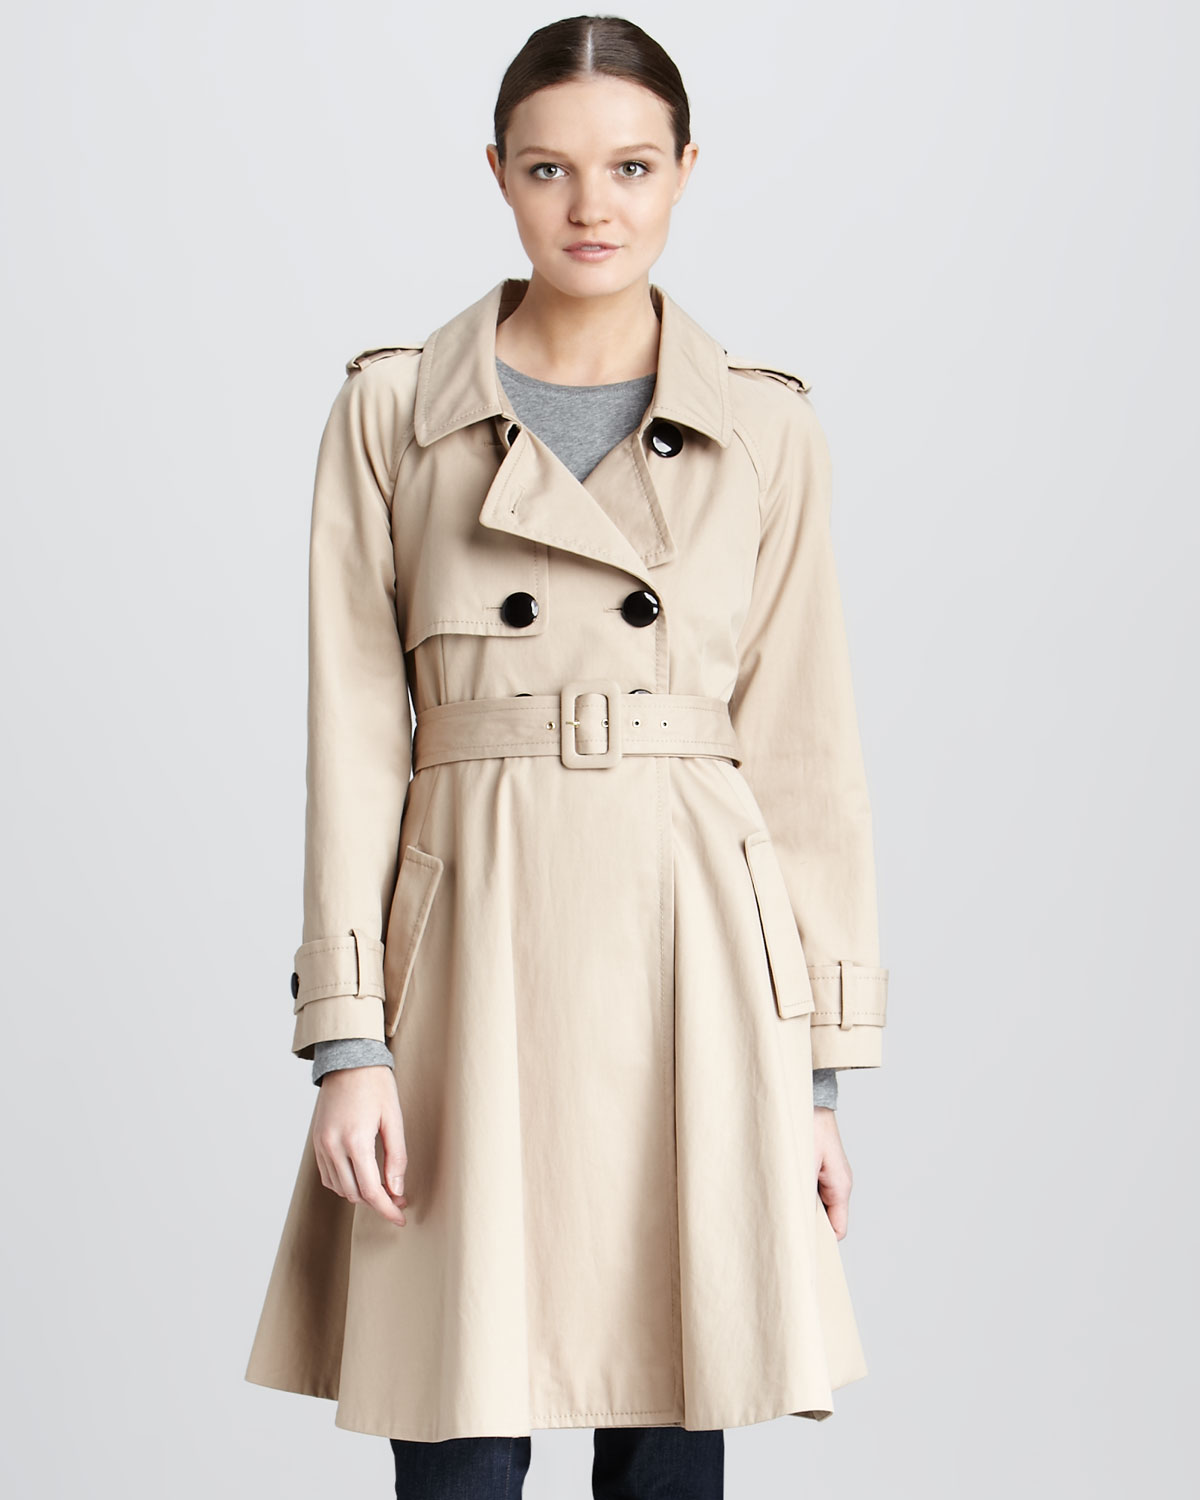 532ec4442a4c Lyst - Kate Spade Dianne Flared Cotton Trench Coat in Natural